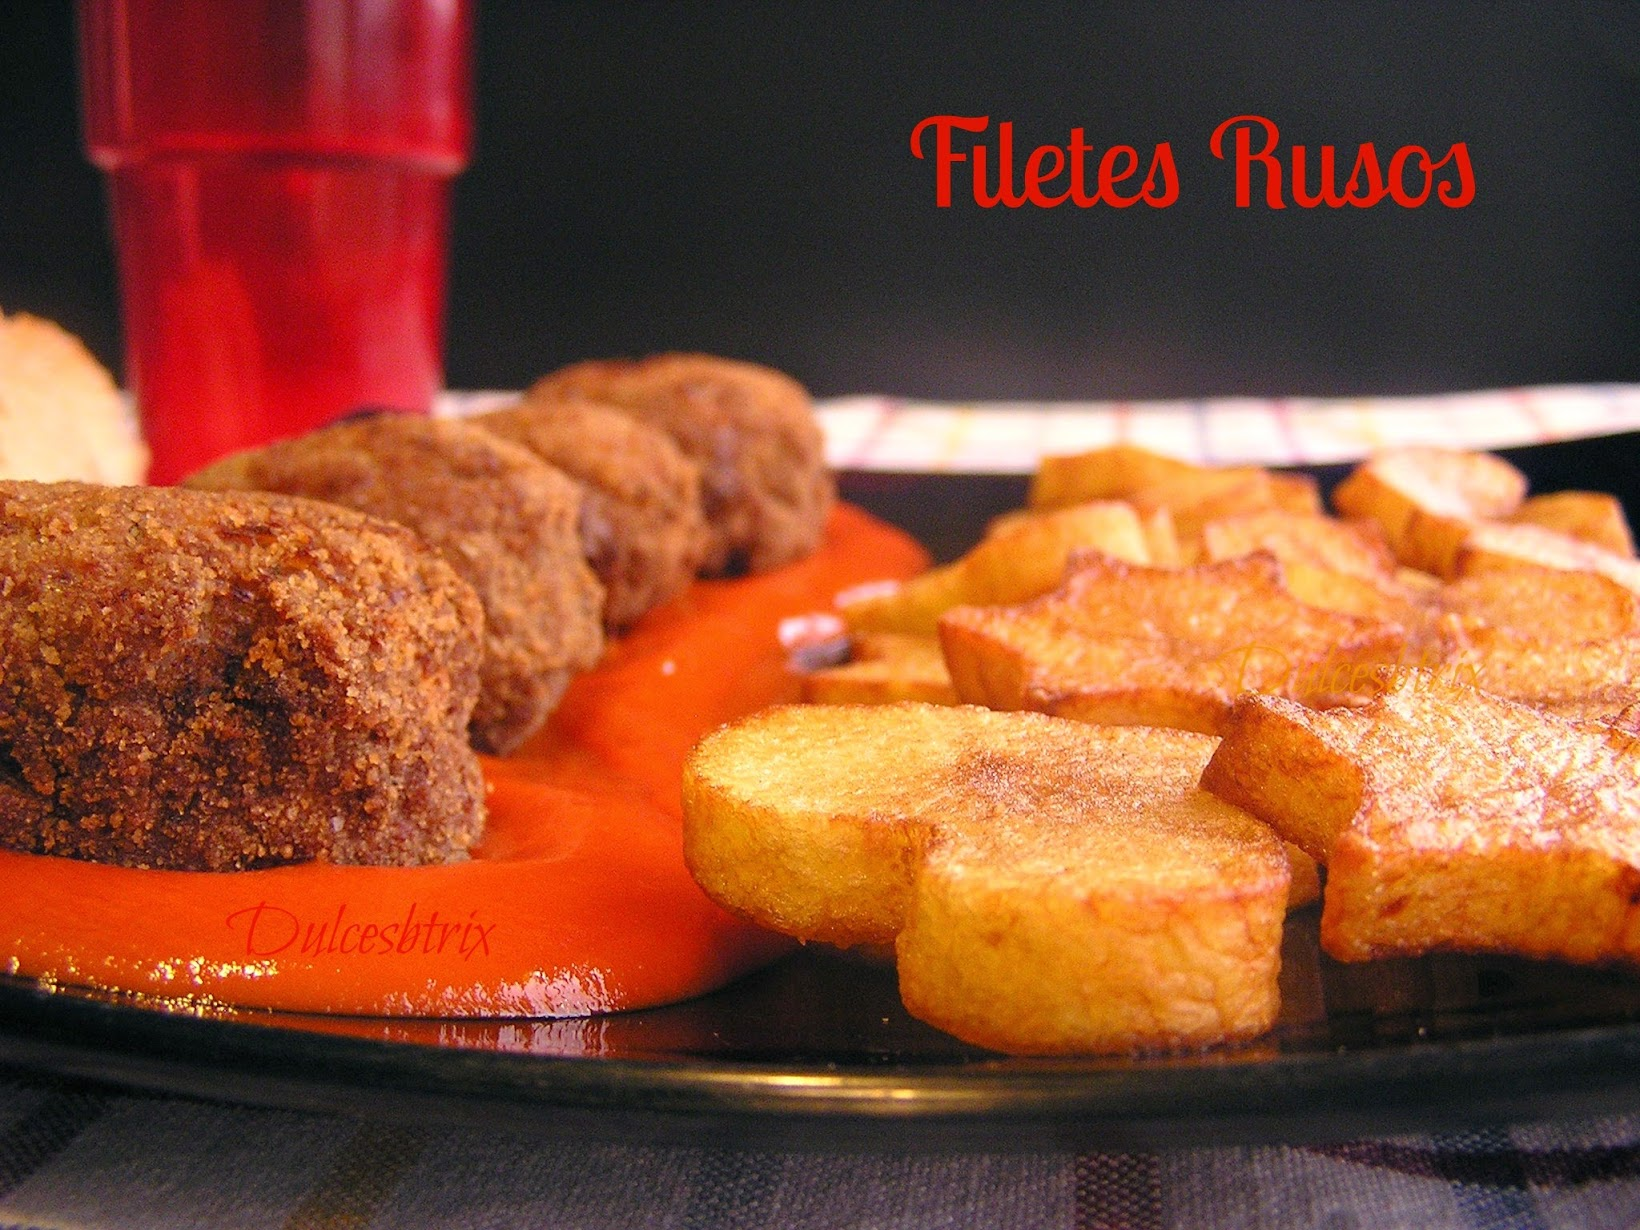 Dulcesbtrix-Filetes rusos